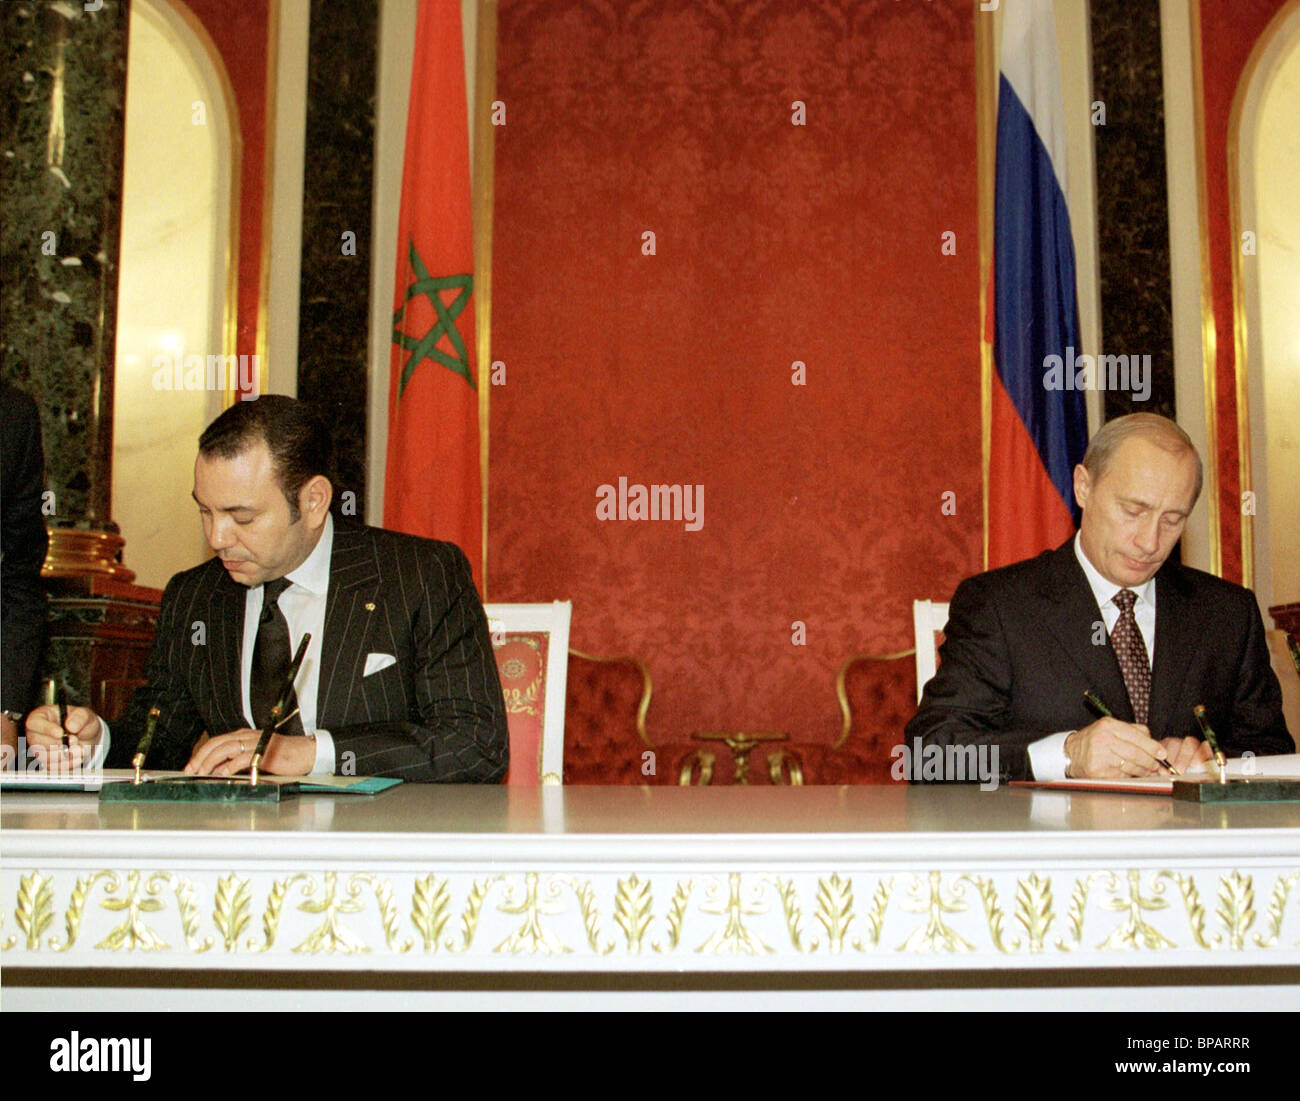 Meeting of President of Russia Vladimir Putin with King of Morocco Mohammed VI - Stock Image